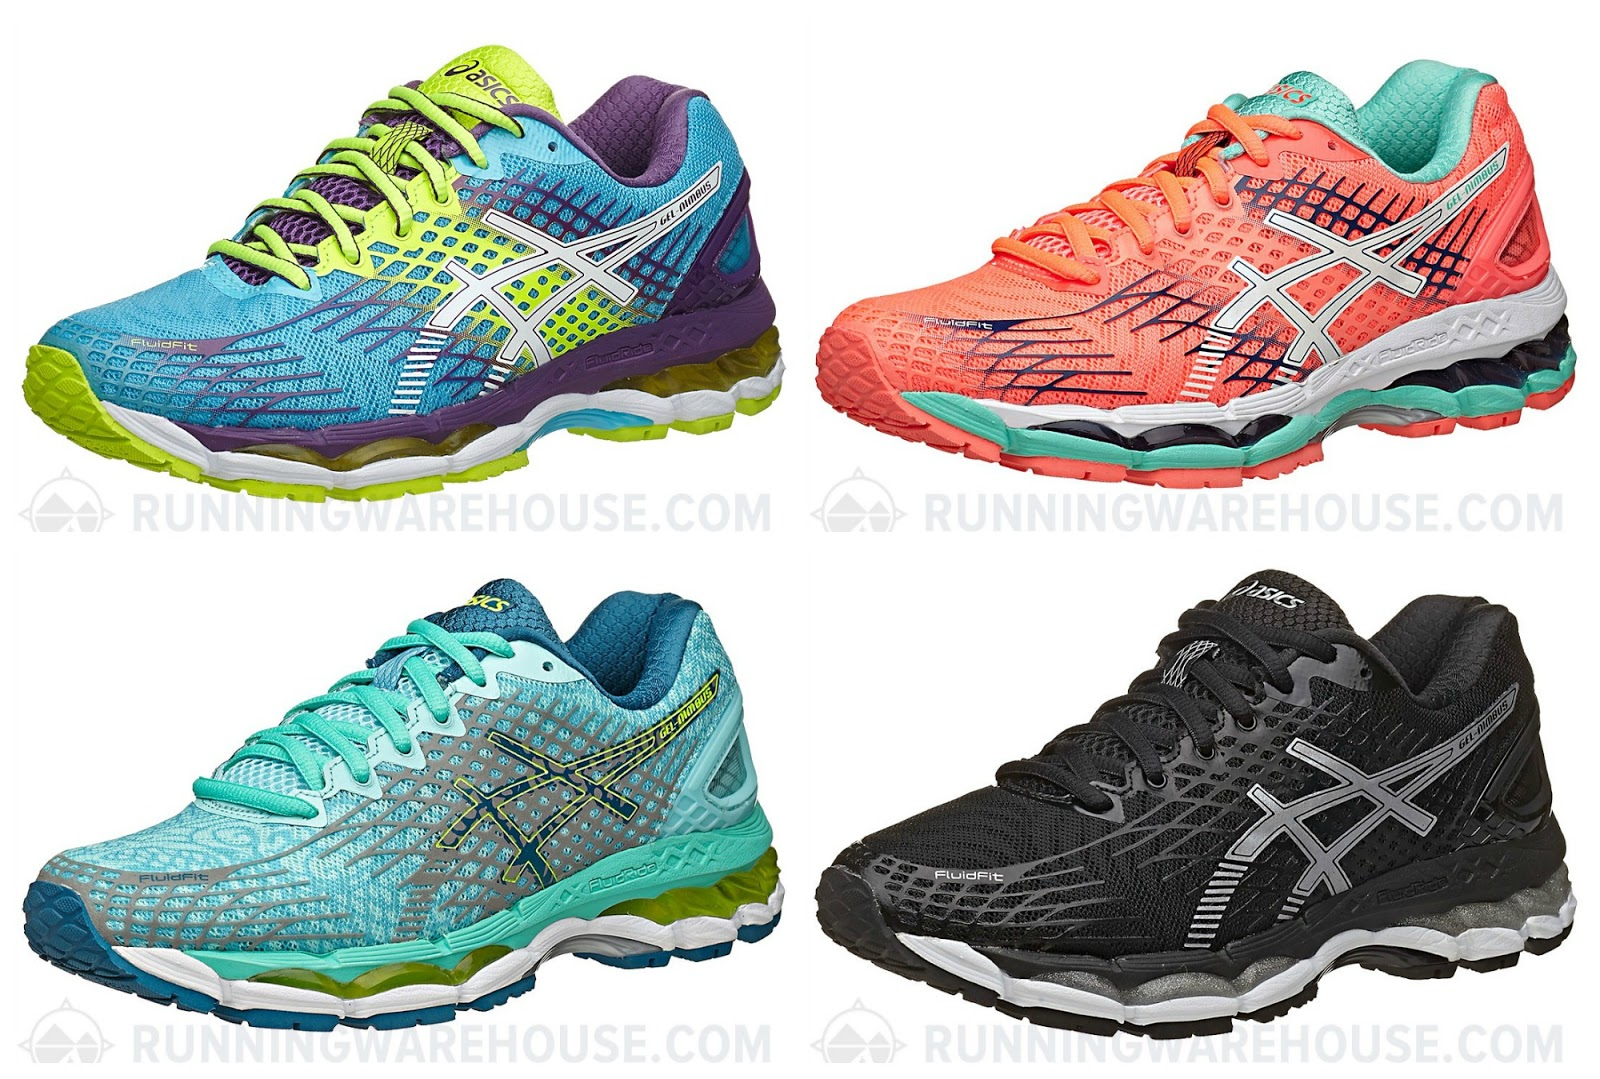 62bjuw7e cheap asics gel nimbus 17 colors. Black Bedroom Furniture Sets. Home Design Ideas